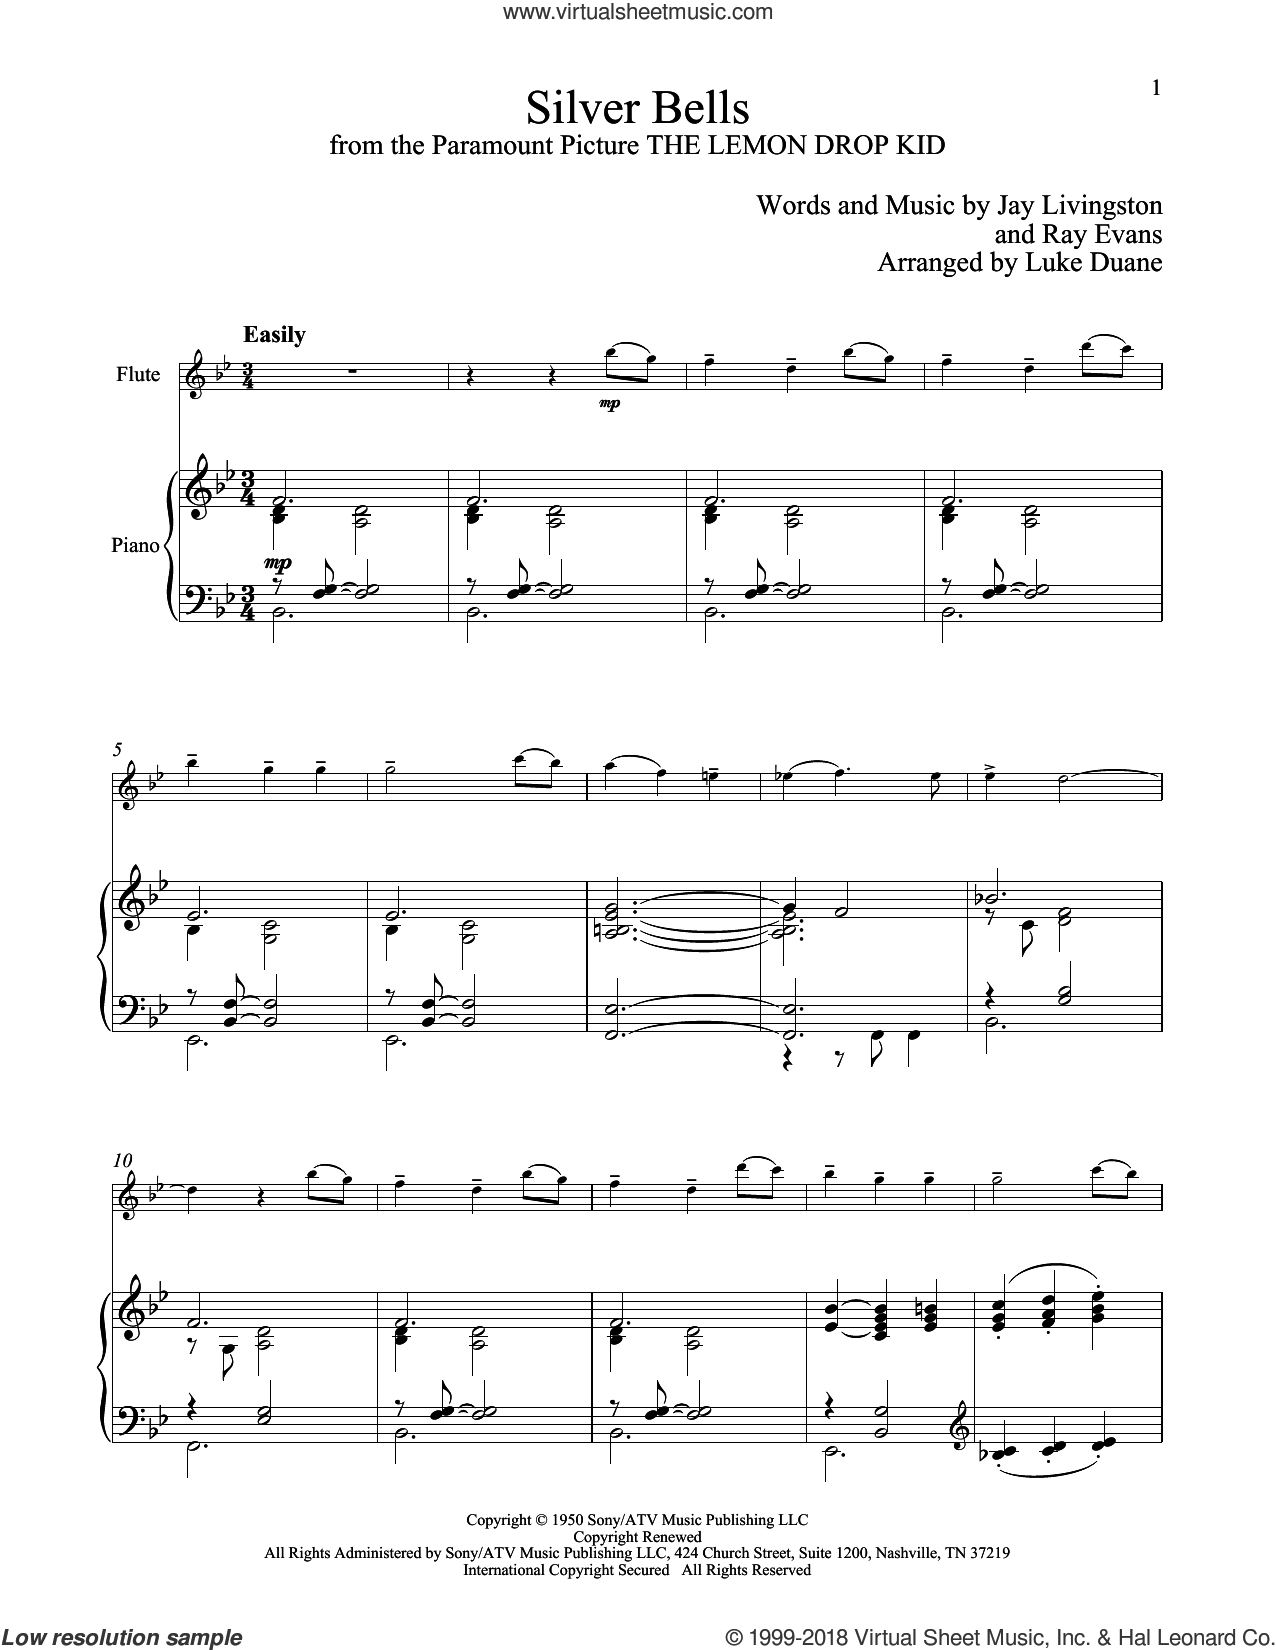 Silver Bells sheet music for flute and piano by Jay Livingston and Ray Evans, classical score, intermediate skill level